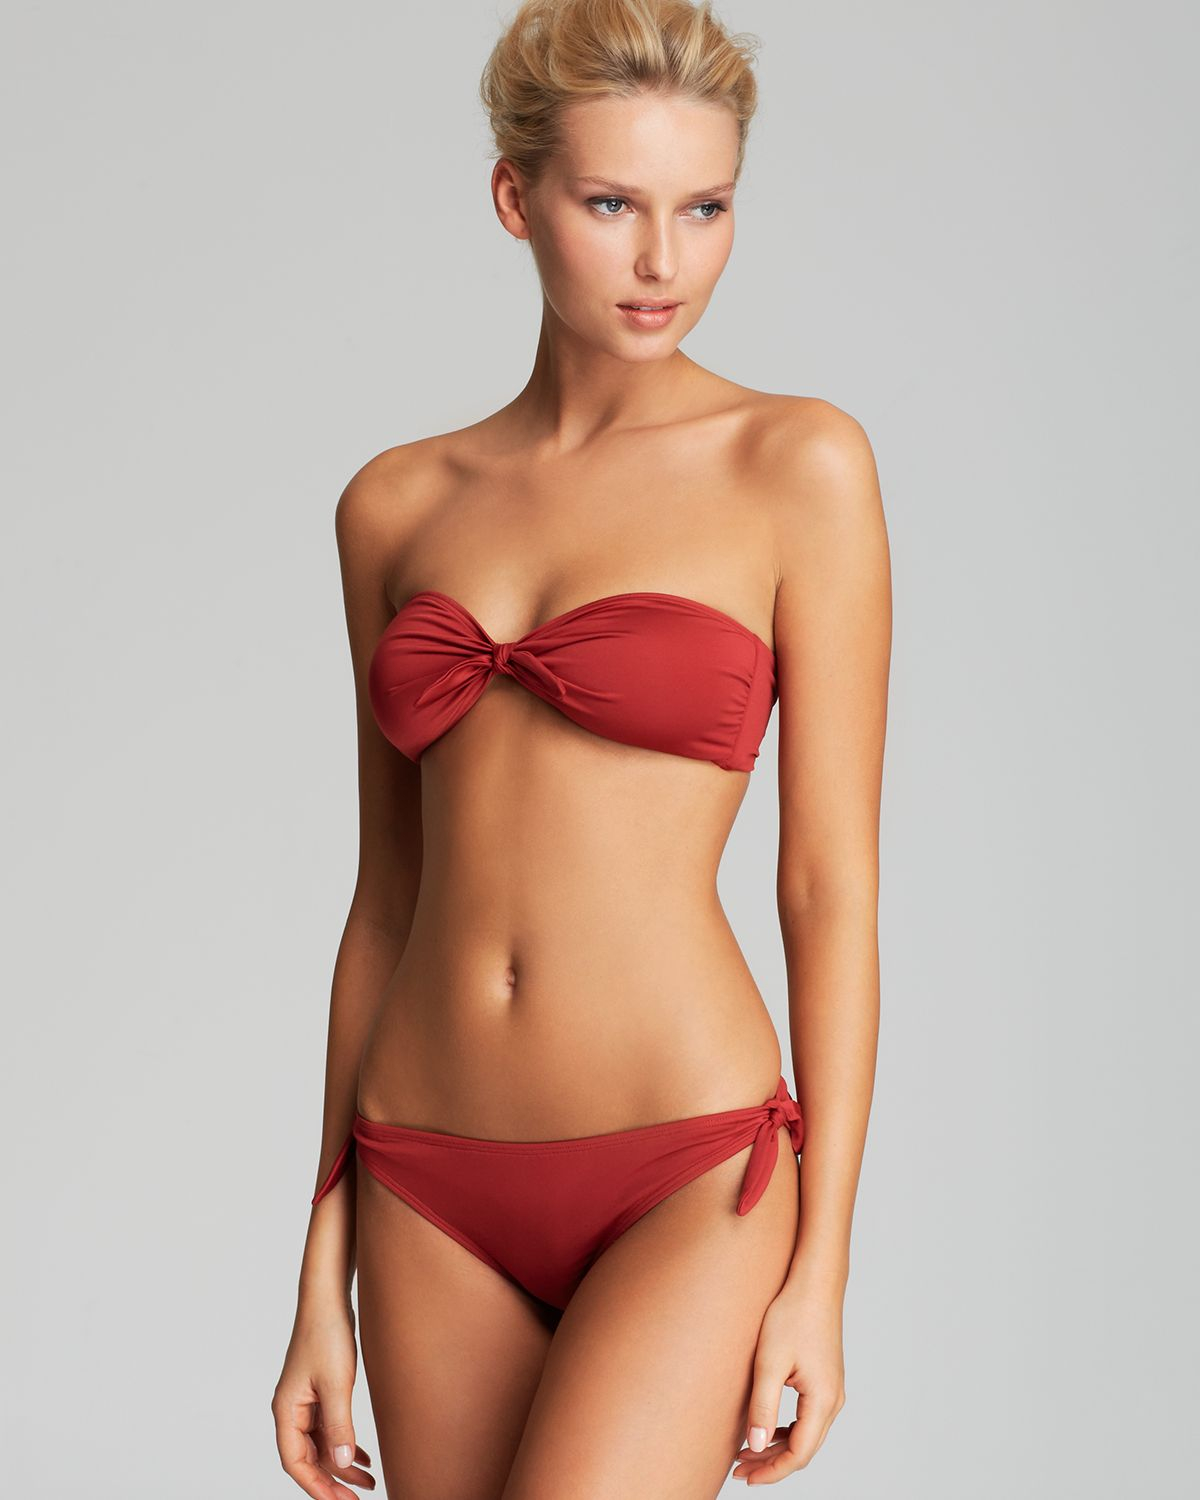 Take our bandeau bikini top– this romantic style is sweet and feminine; a total breath-taker for any free spirit. Or maybe you're looking to break loose with an of-the-moment trend. Or maybe you're looking to break loose with an of-the-moment trend.